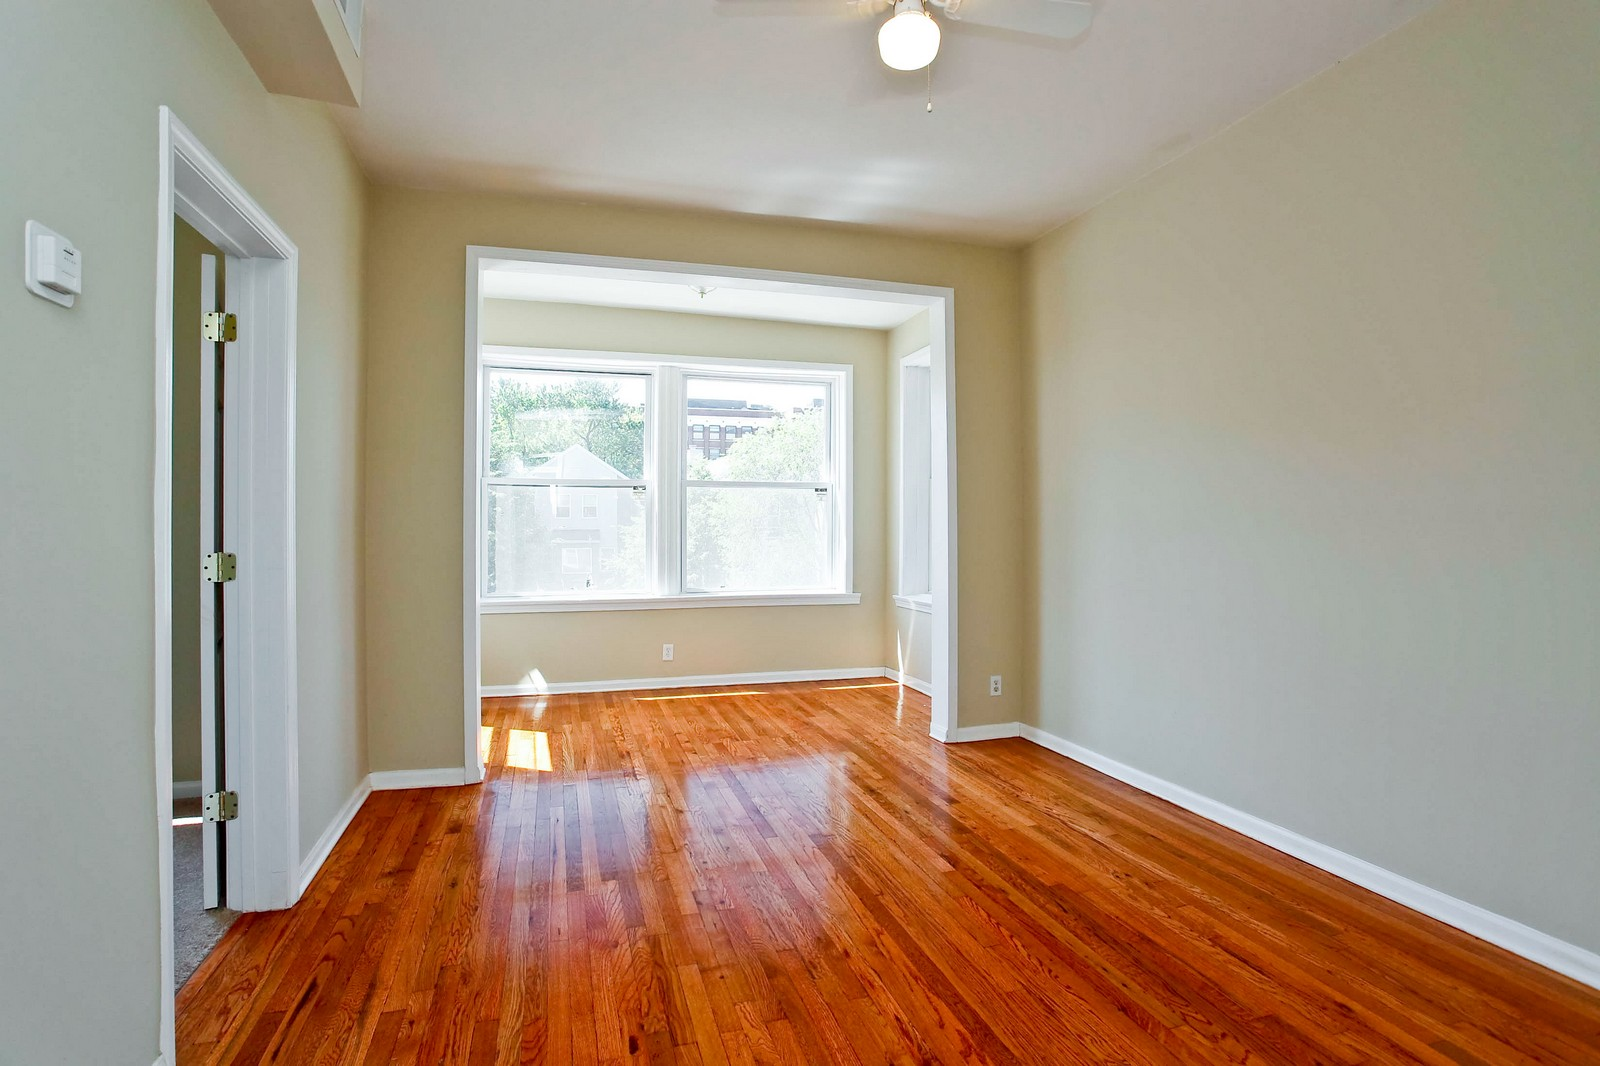 Real Estate Photography - 3332 W Polk St, Chicago, IL, 60624 - Living Room